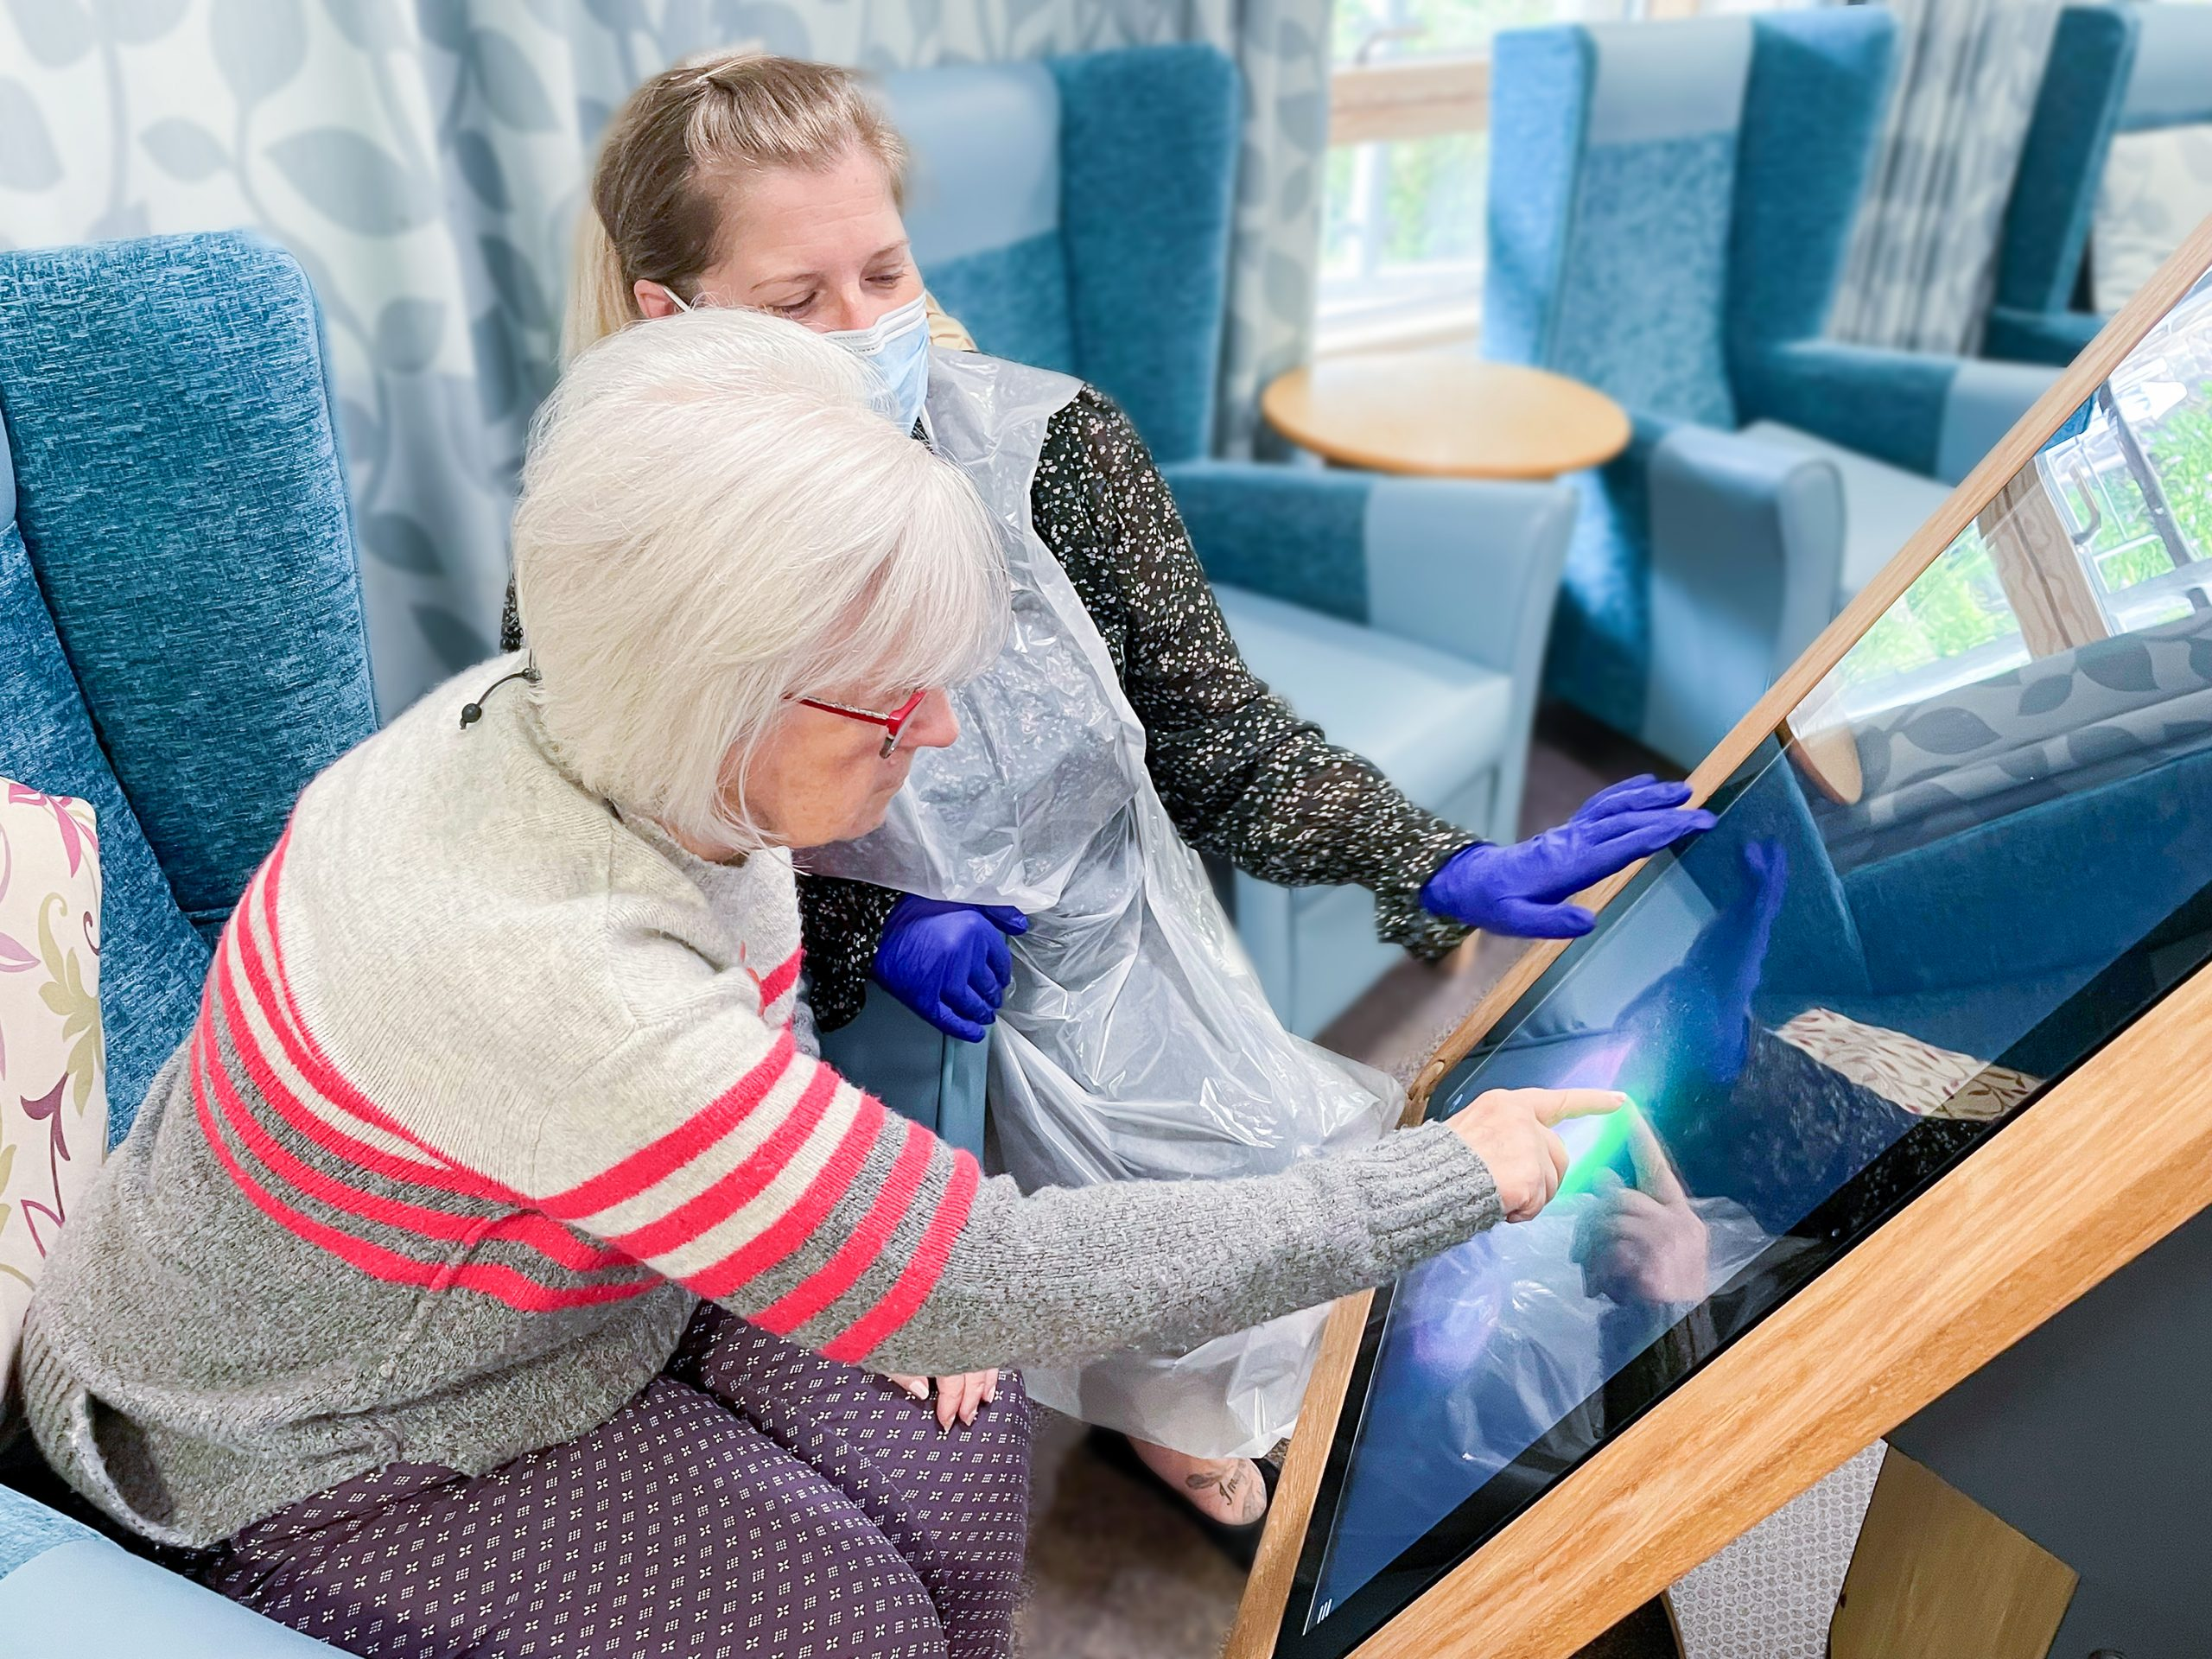 A resident at Bradbury Court care home using the interactive table technology.